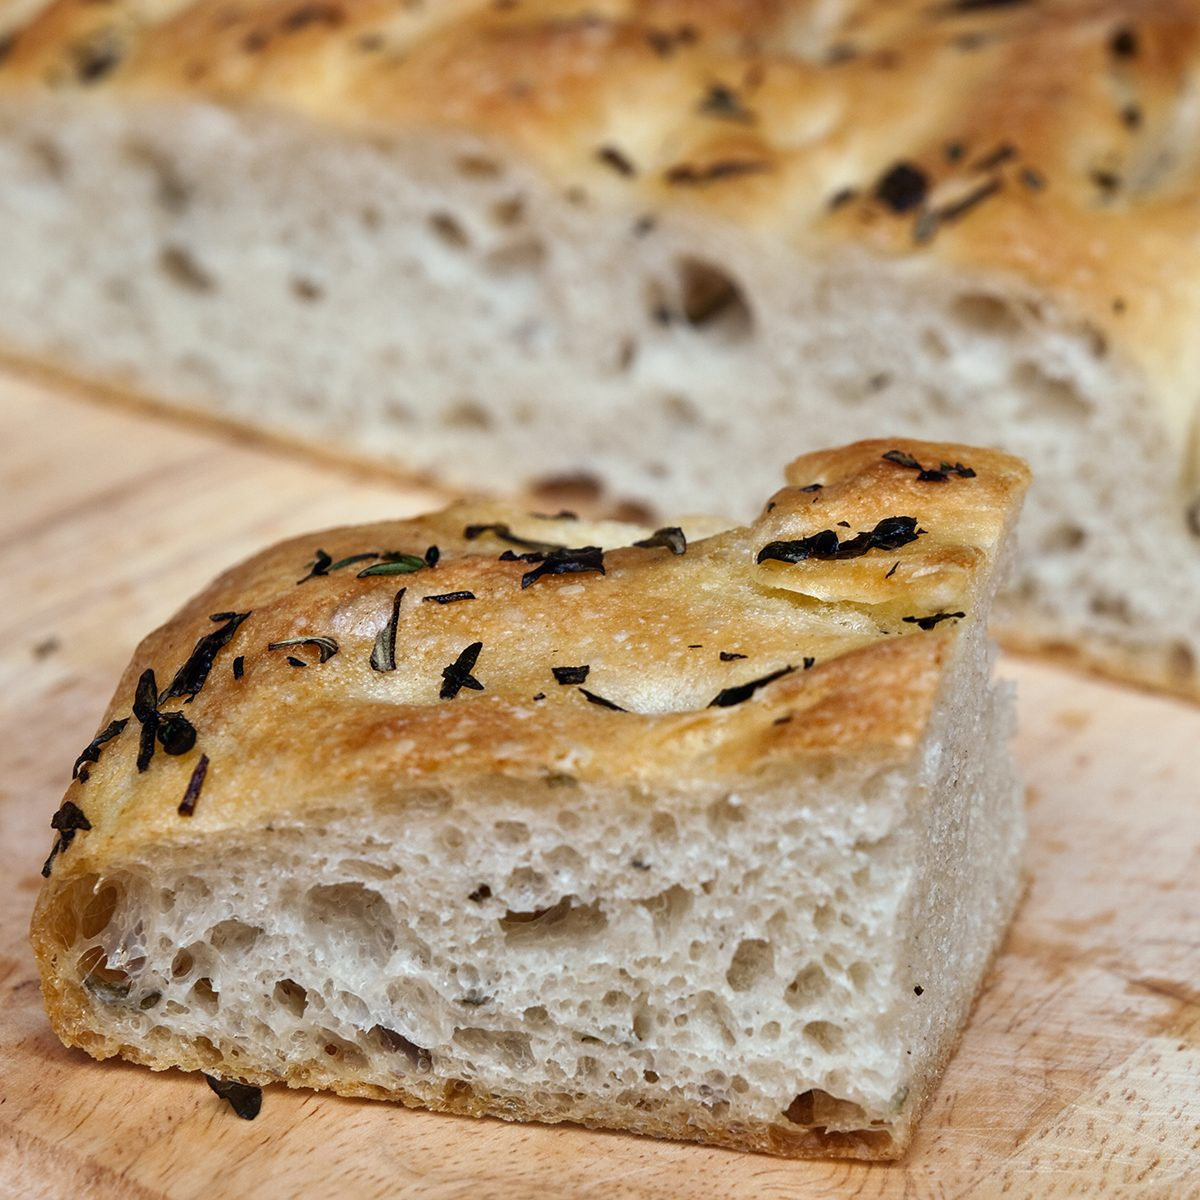 A slice of homemade herbed focaccia bread.